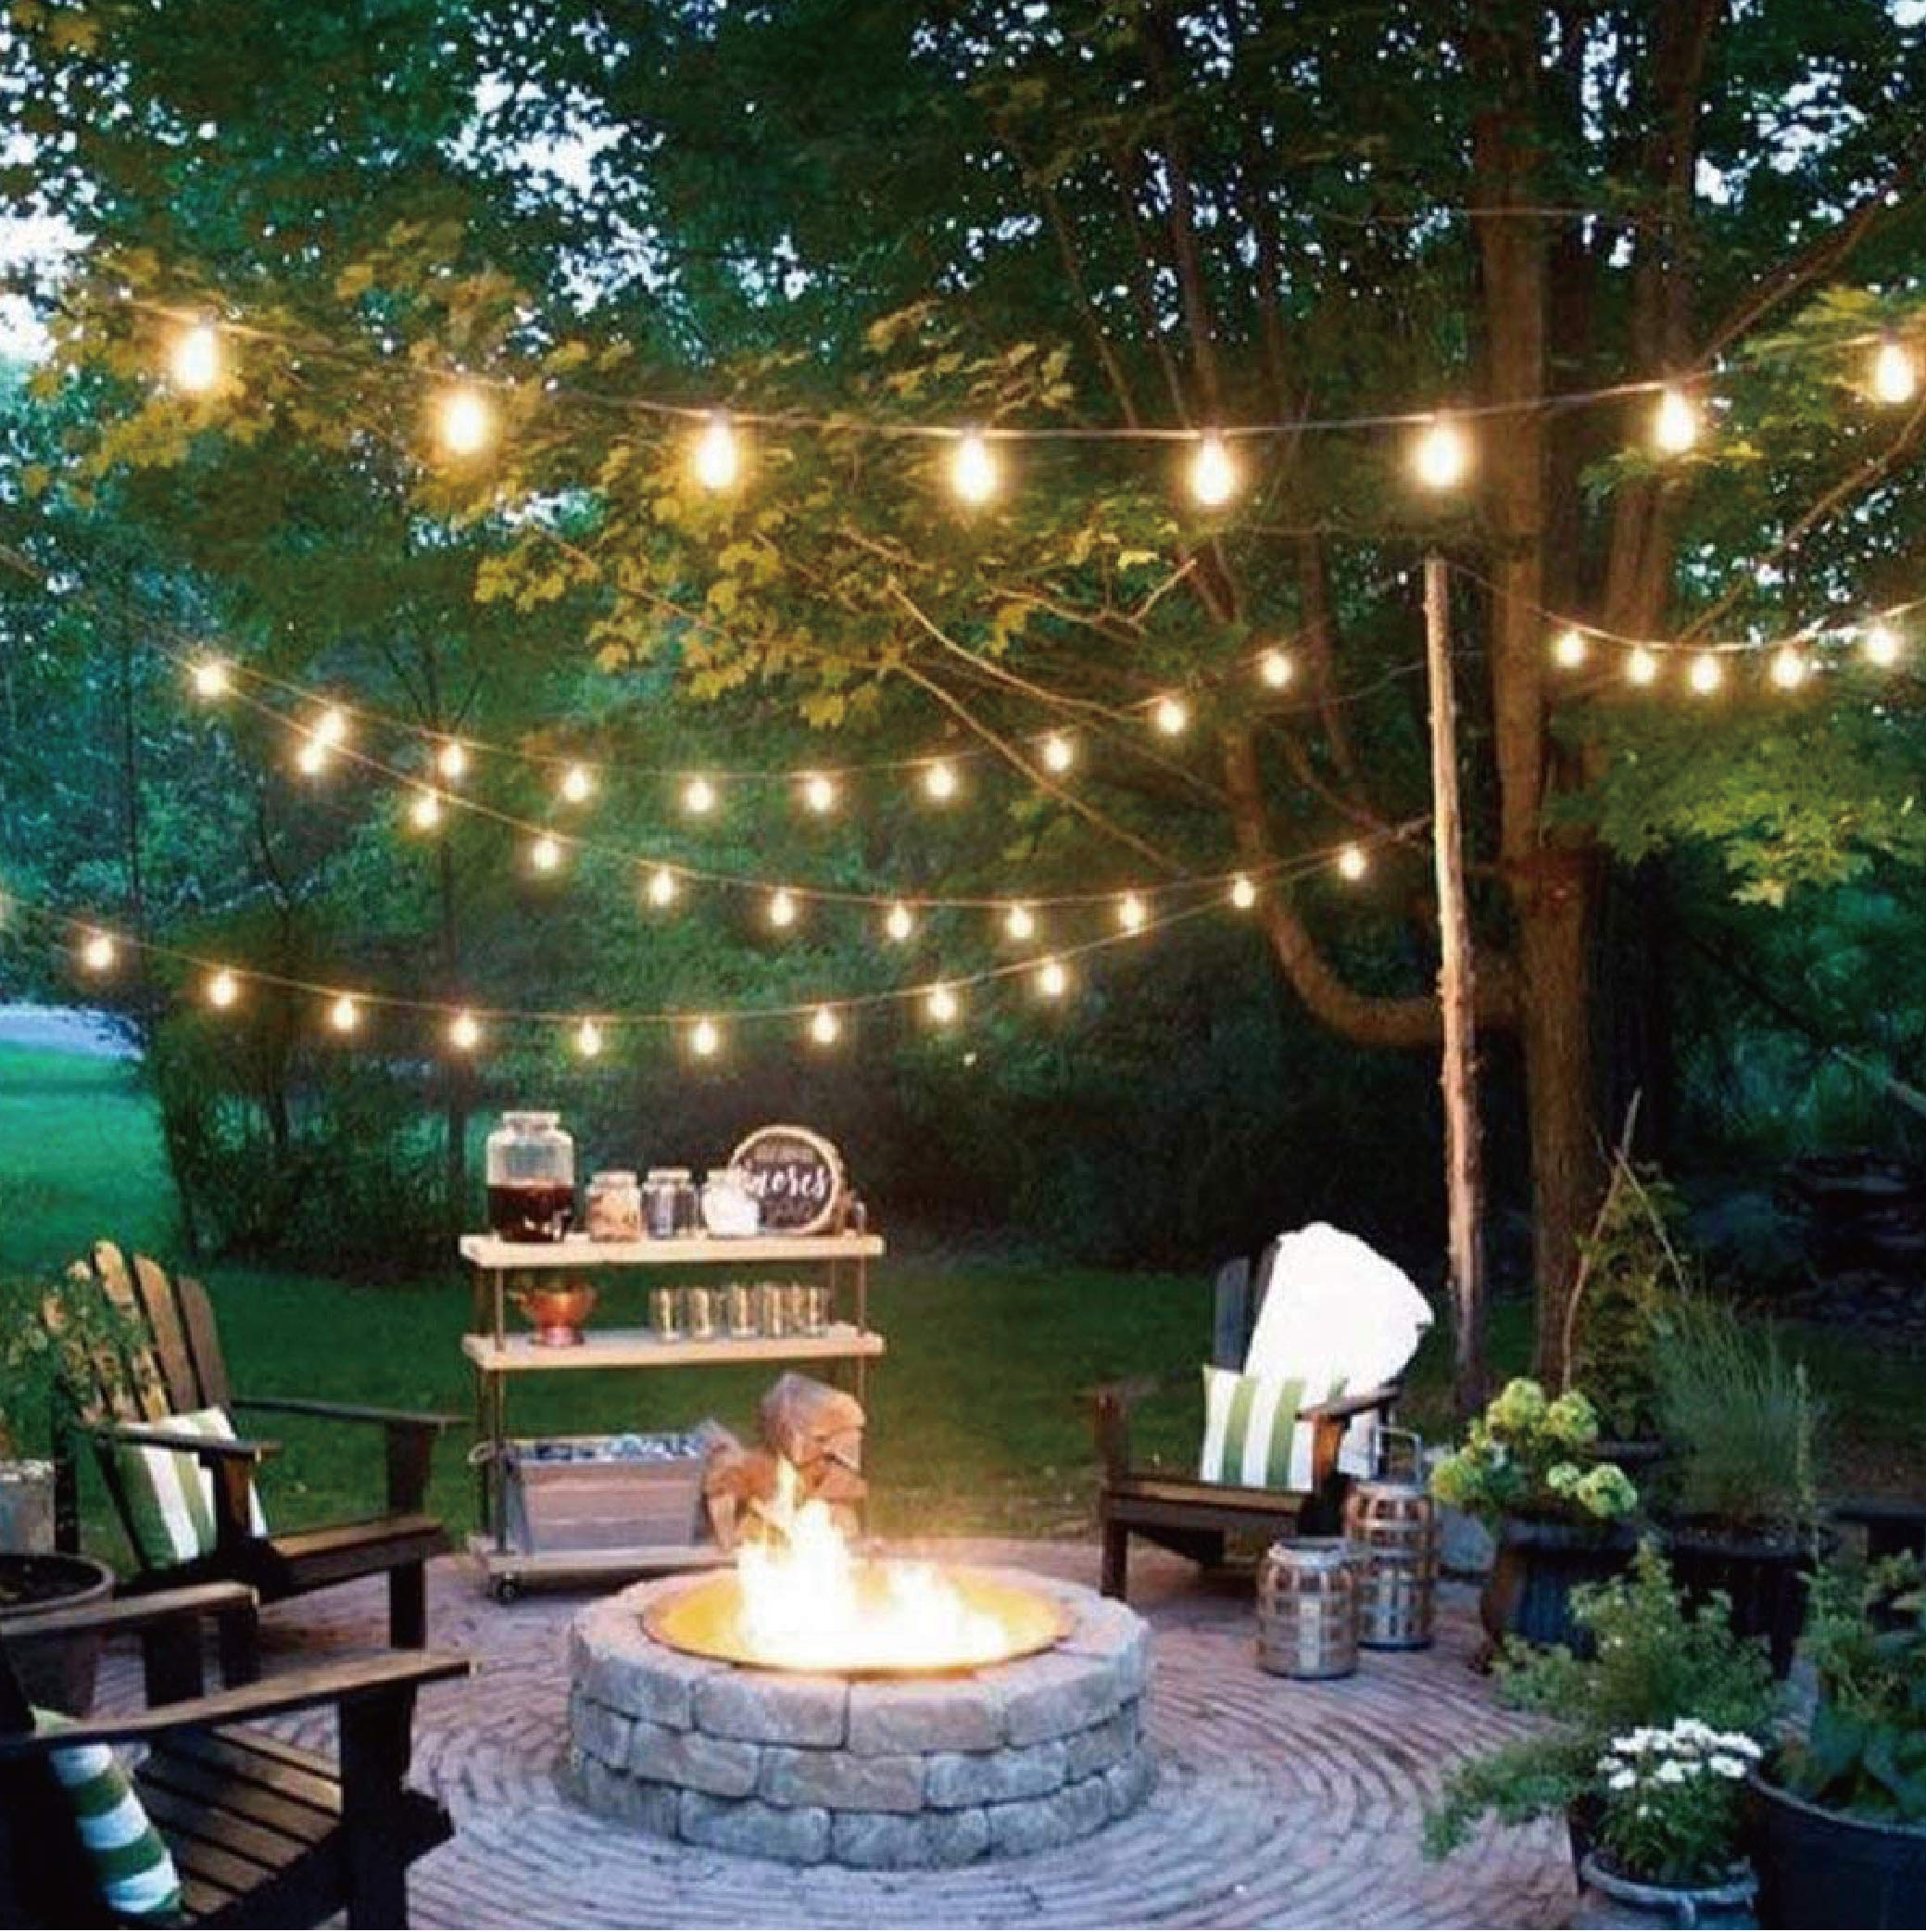 KMC 50 FT Waterproof Outdoor String Lights, 16/3 Heavy Duty Power Cord with 15 x E26 Sockets and Hanging Loops, 18 x 11 Watt S14 Dimmable Incandescent Bulbs Included (3 Spares), Perfect Patio Lights by KMC (Image #6)